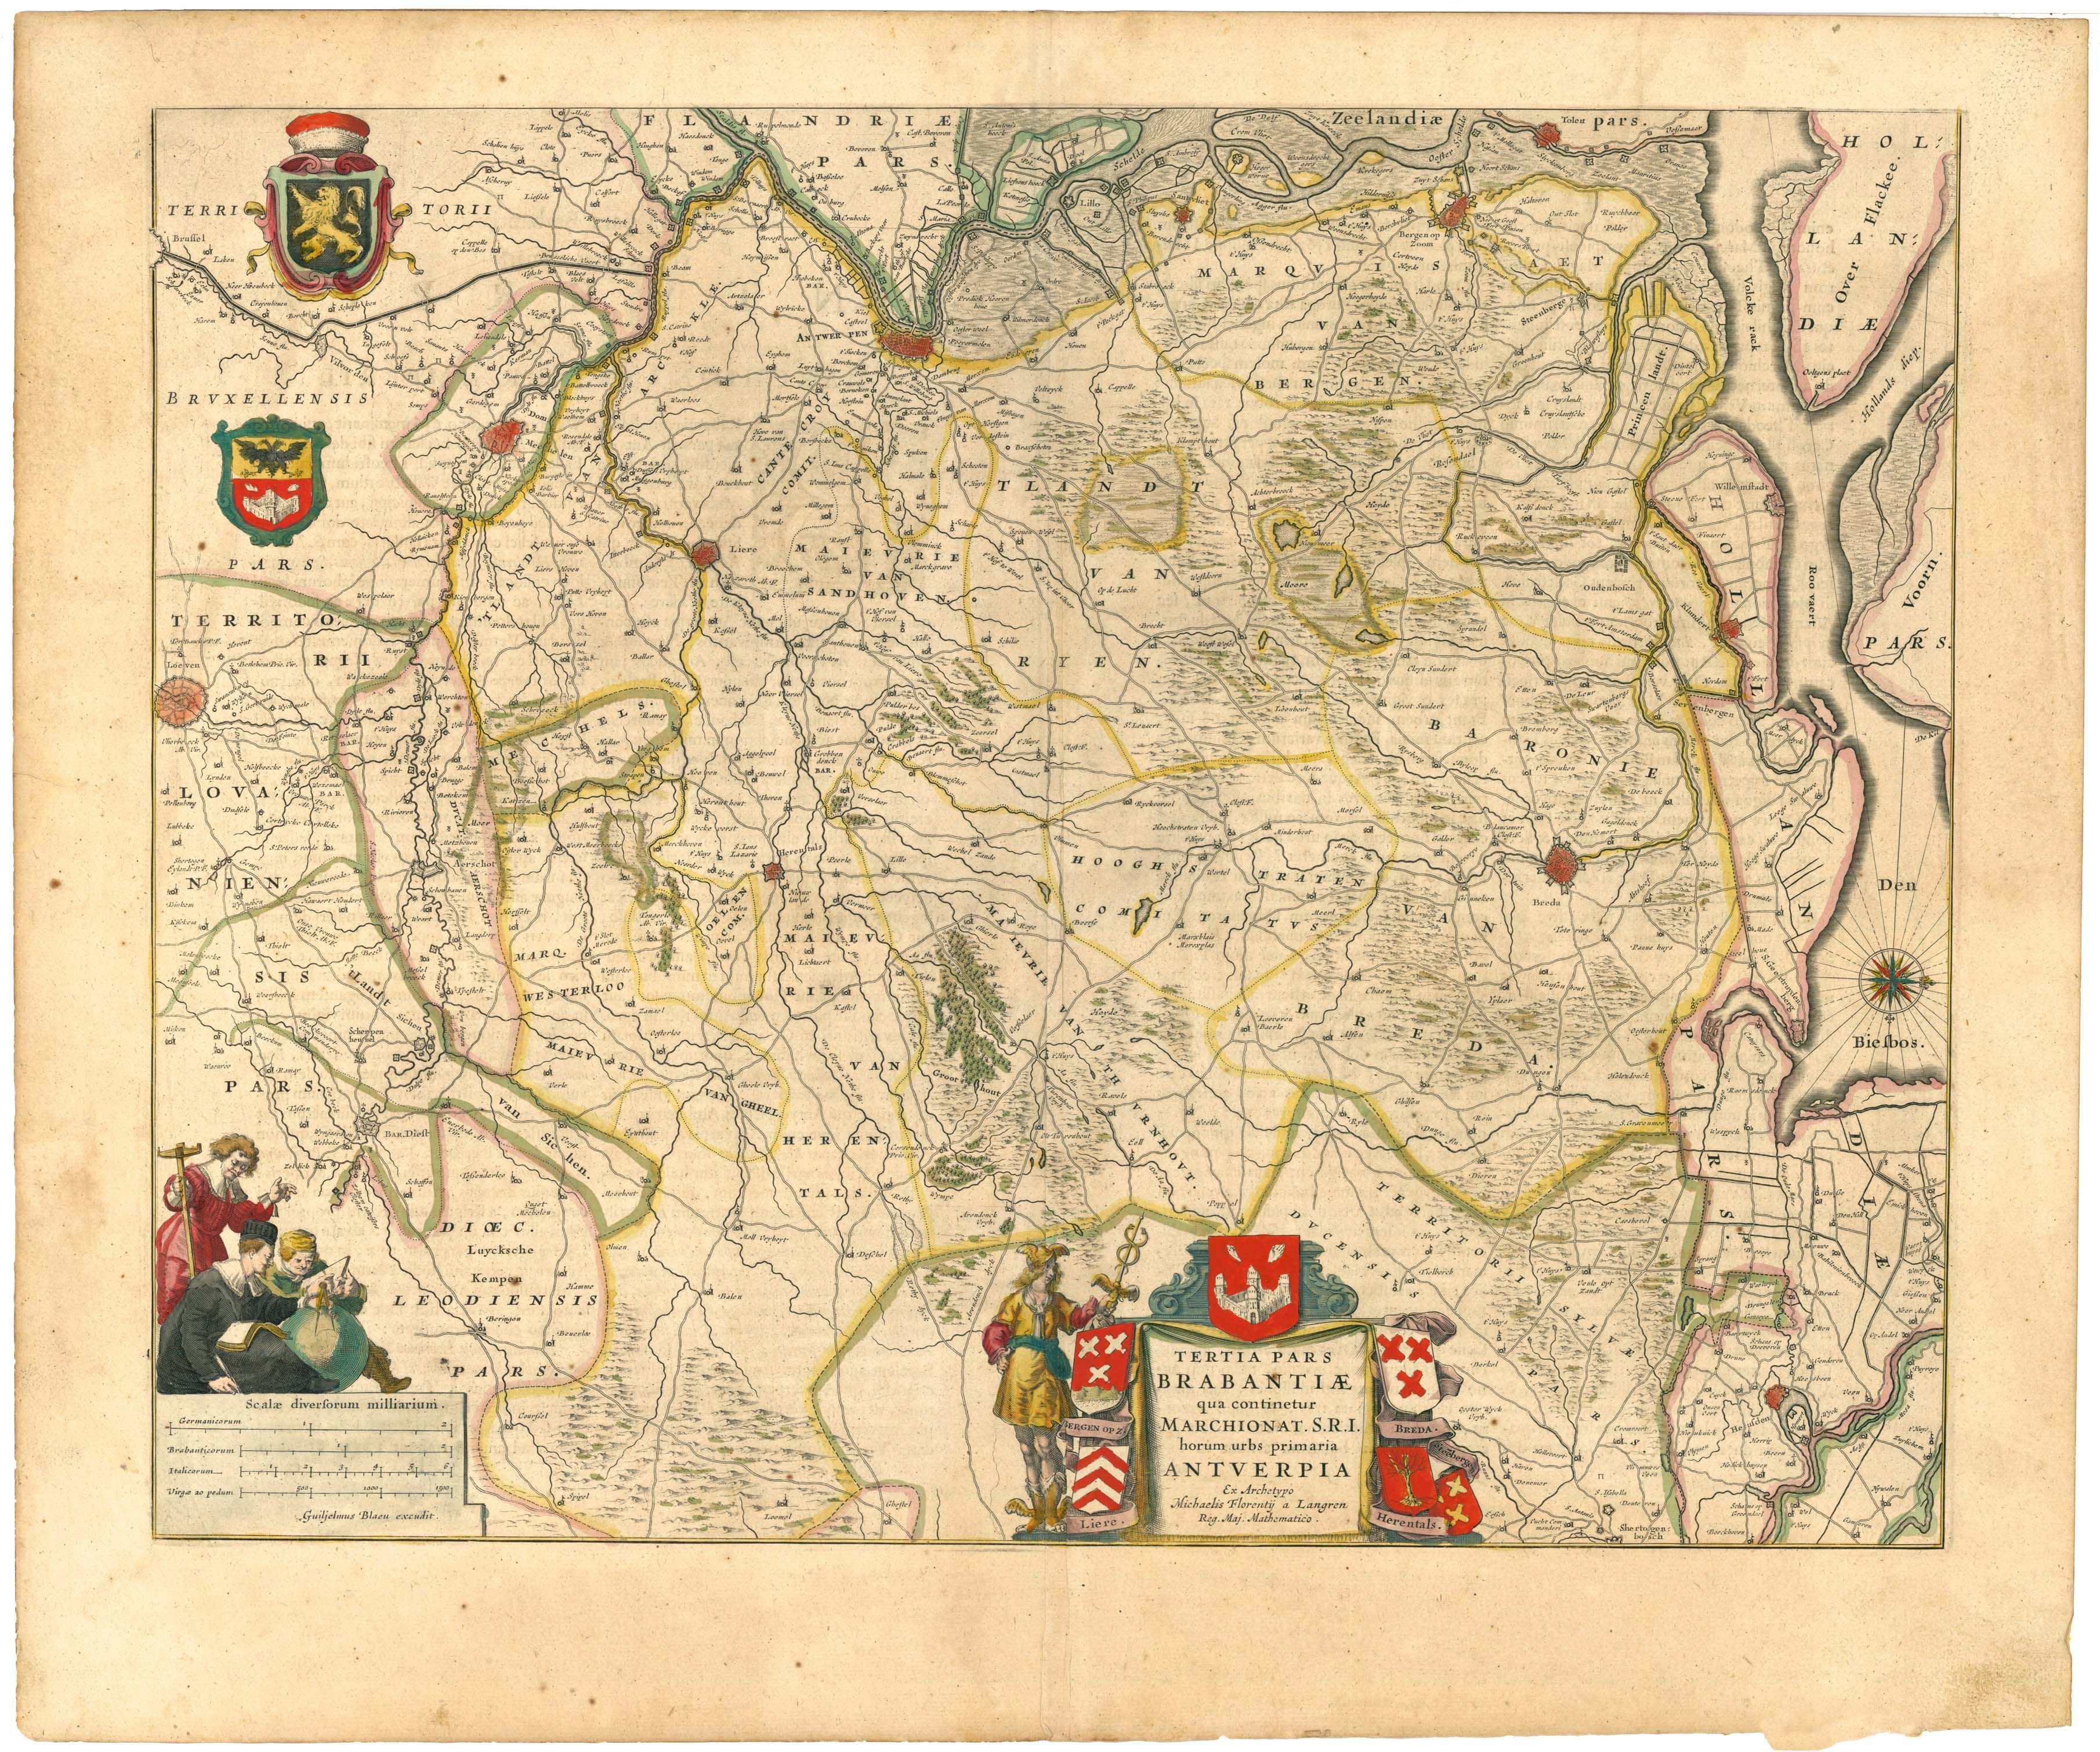 North Brabant Province of The Netherlands by Blaeu 1645 History In